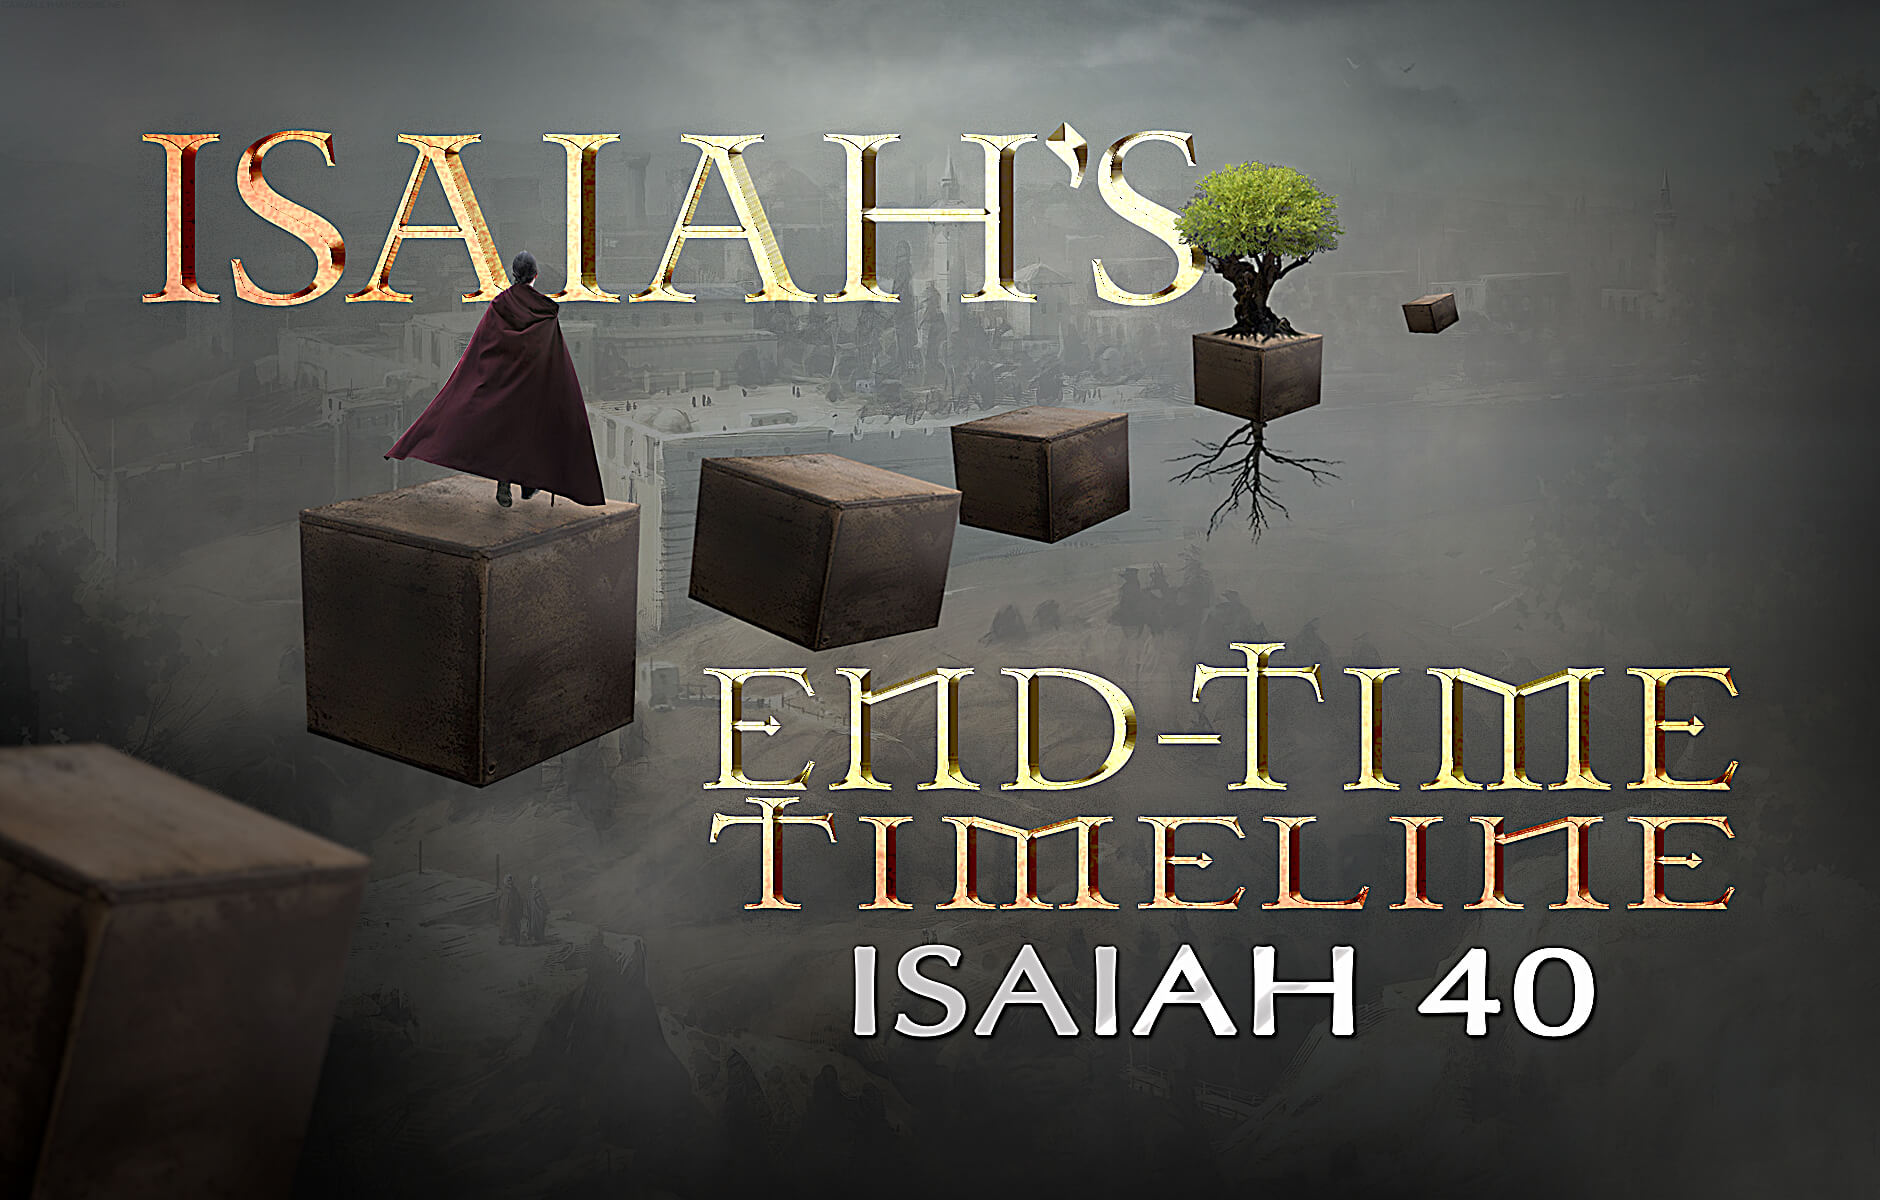 Isaiah's End-time Timeline Chapter 40